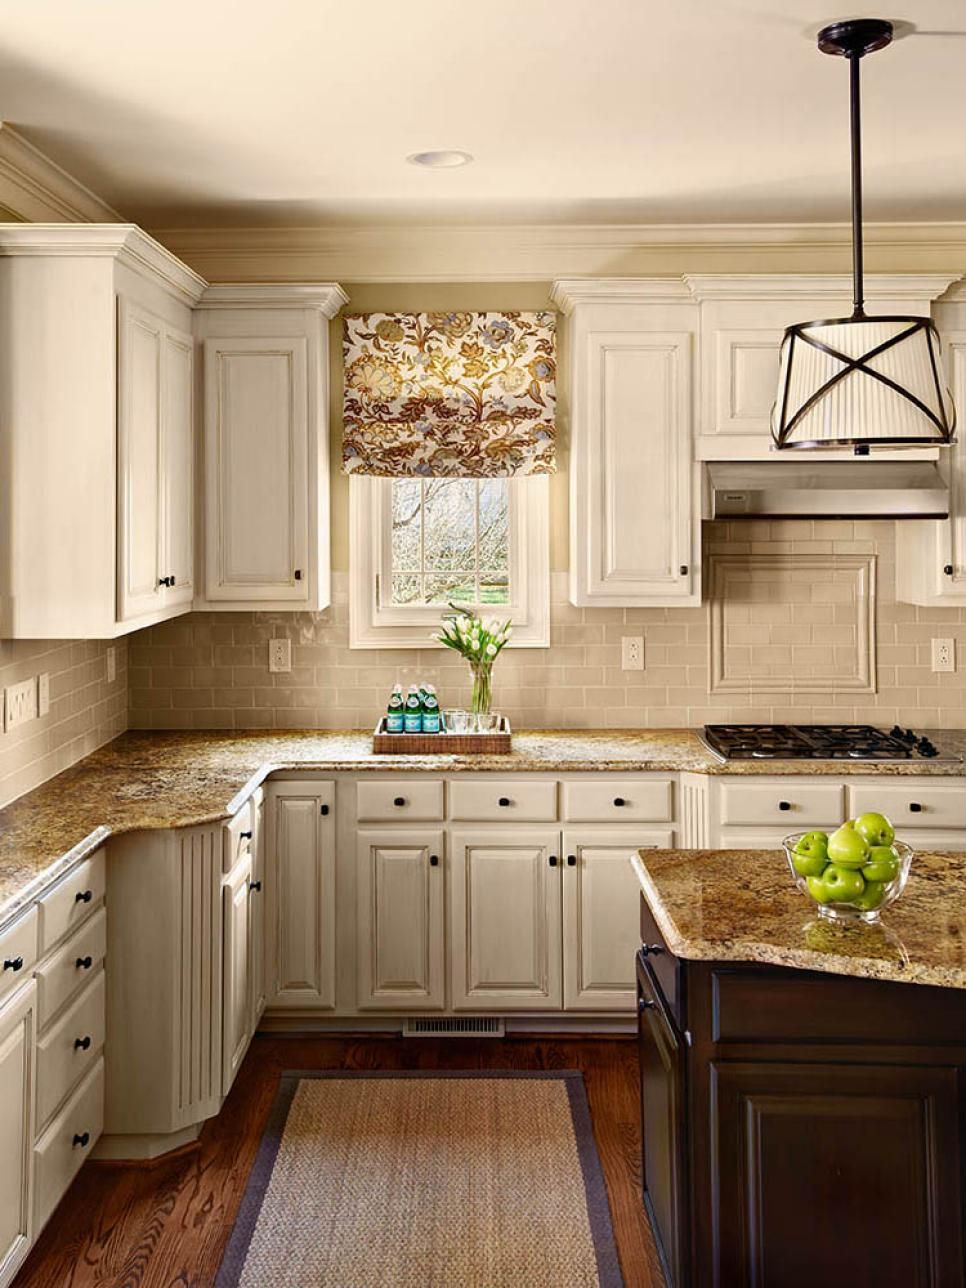 browse pictures of gorgeous kitchens for cabinet ideas from hgtvcom - Kitchen Cabinet Ideas